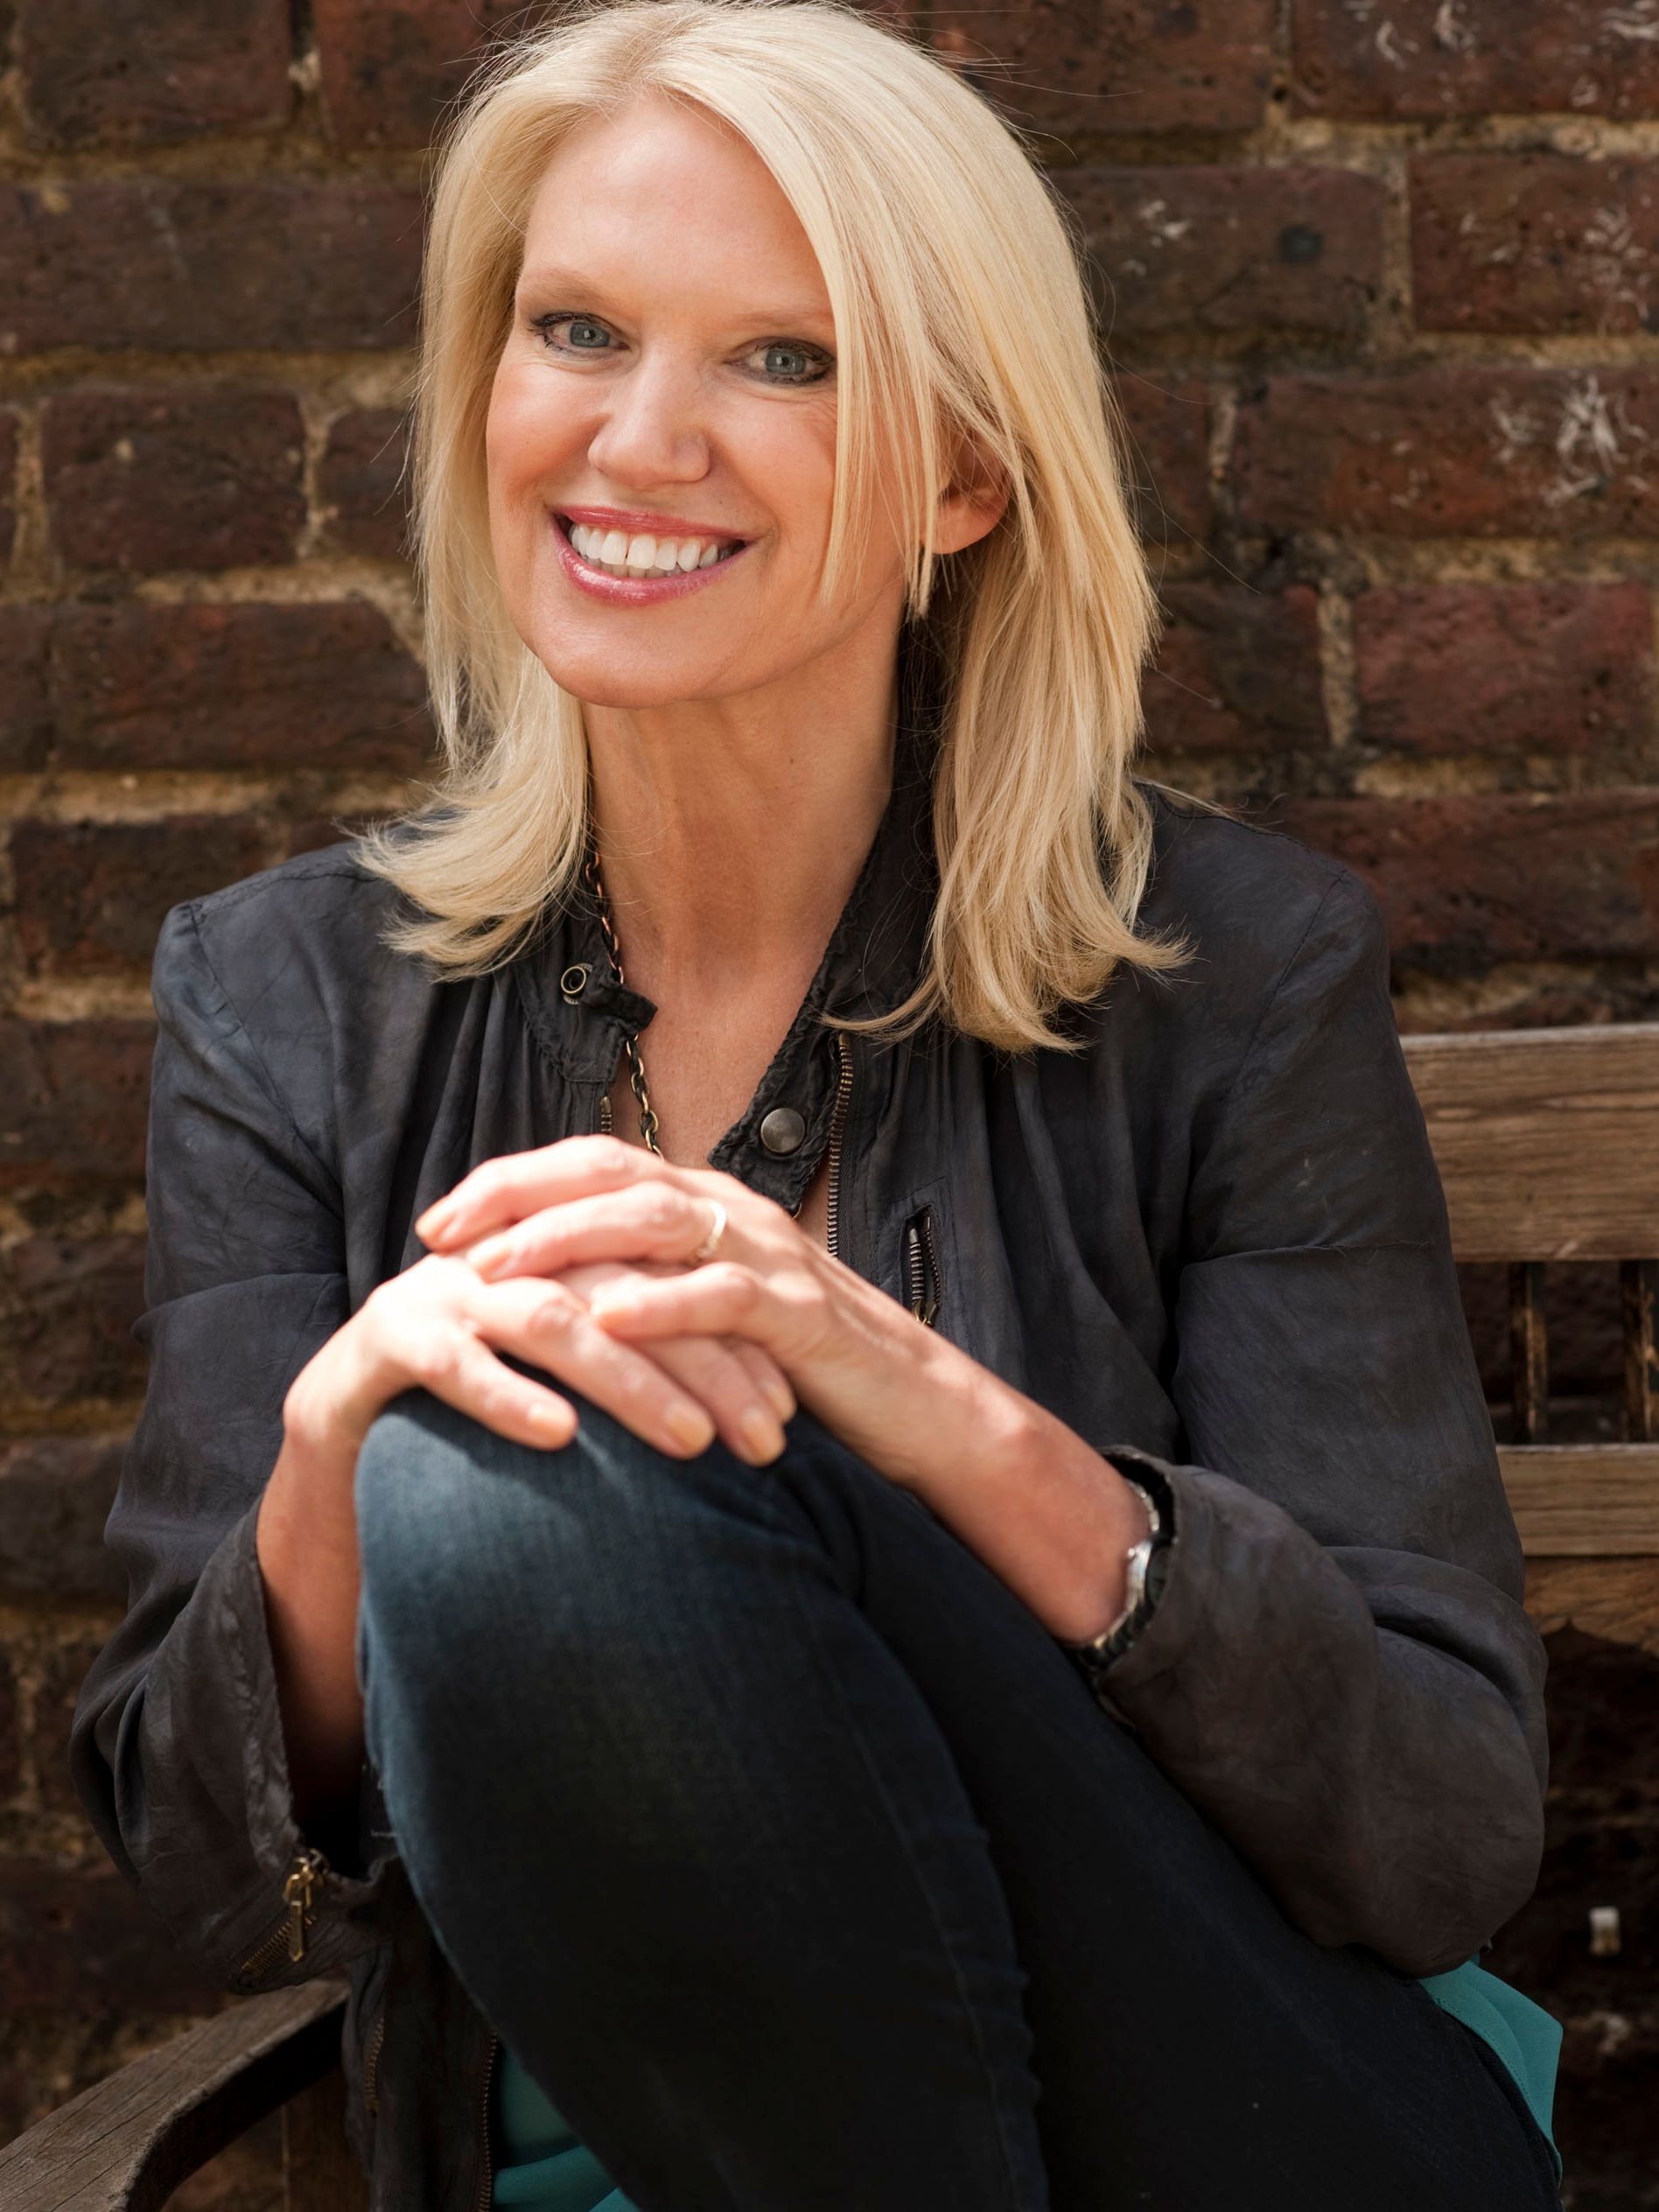 Wimbledon Art Fair welcomes Anneka Rice to open the May 2019 show